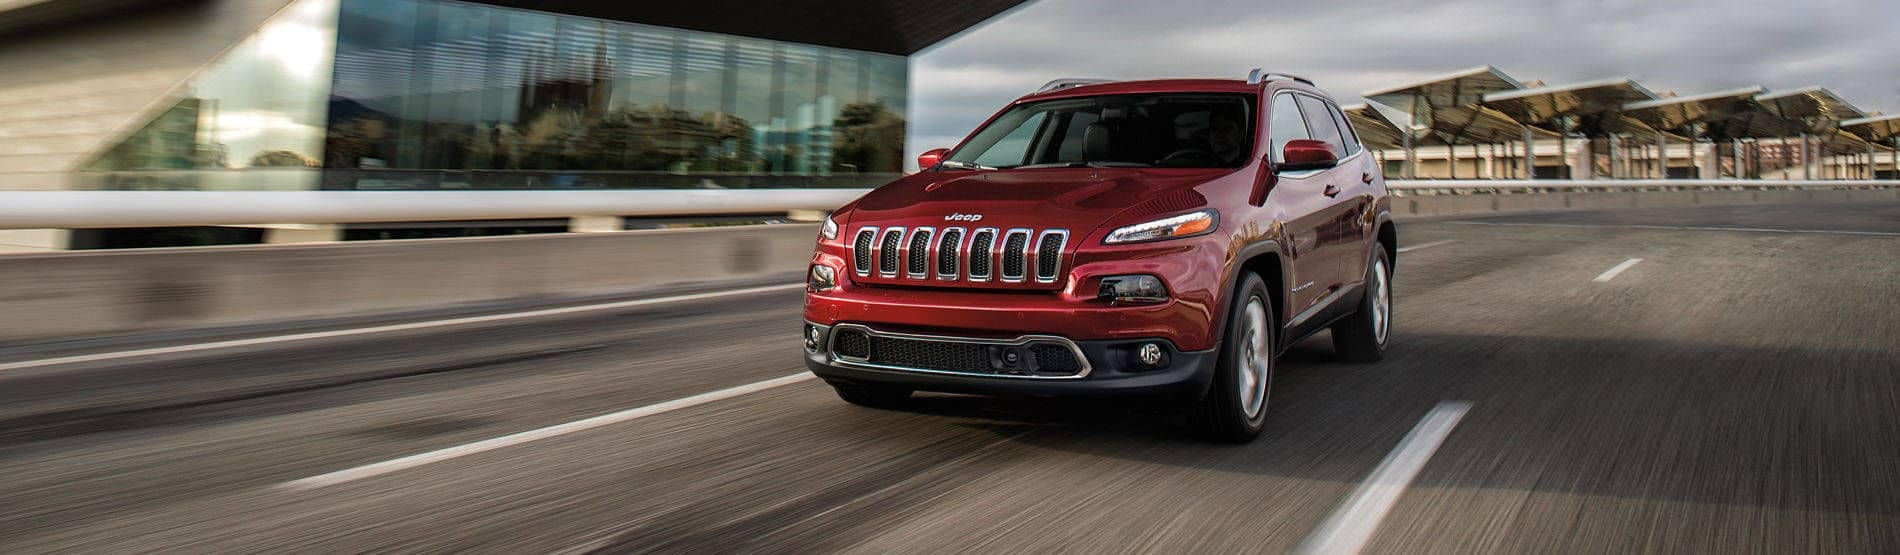 2015-Jeep-Cherokee-Miami-Dealership